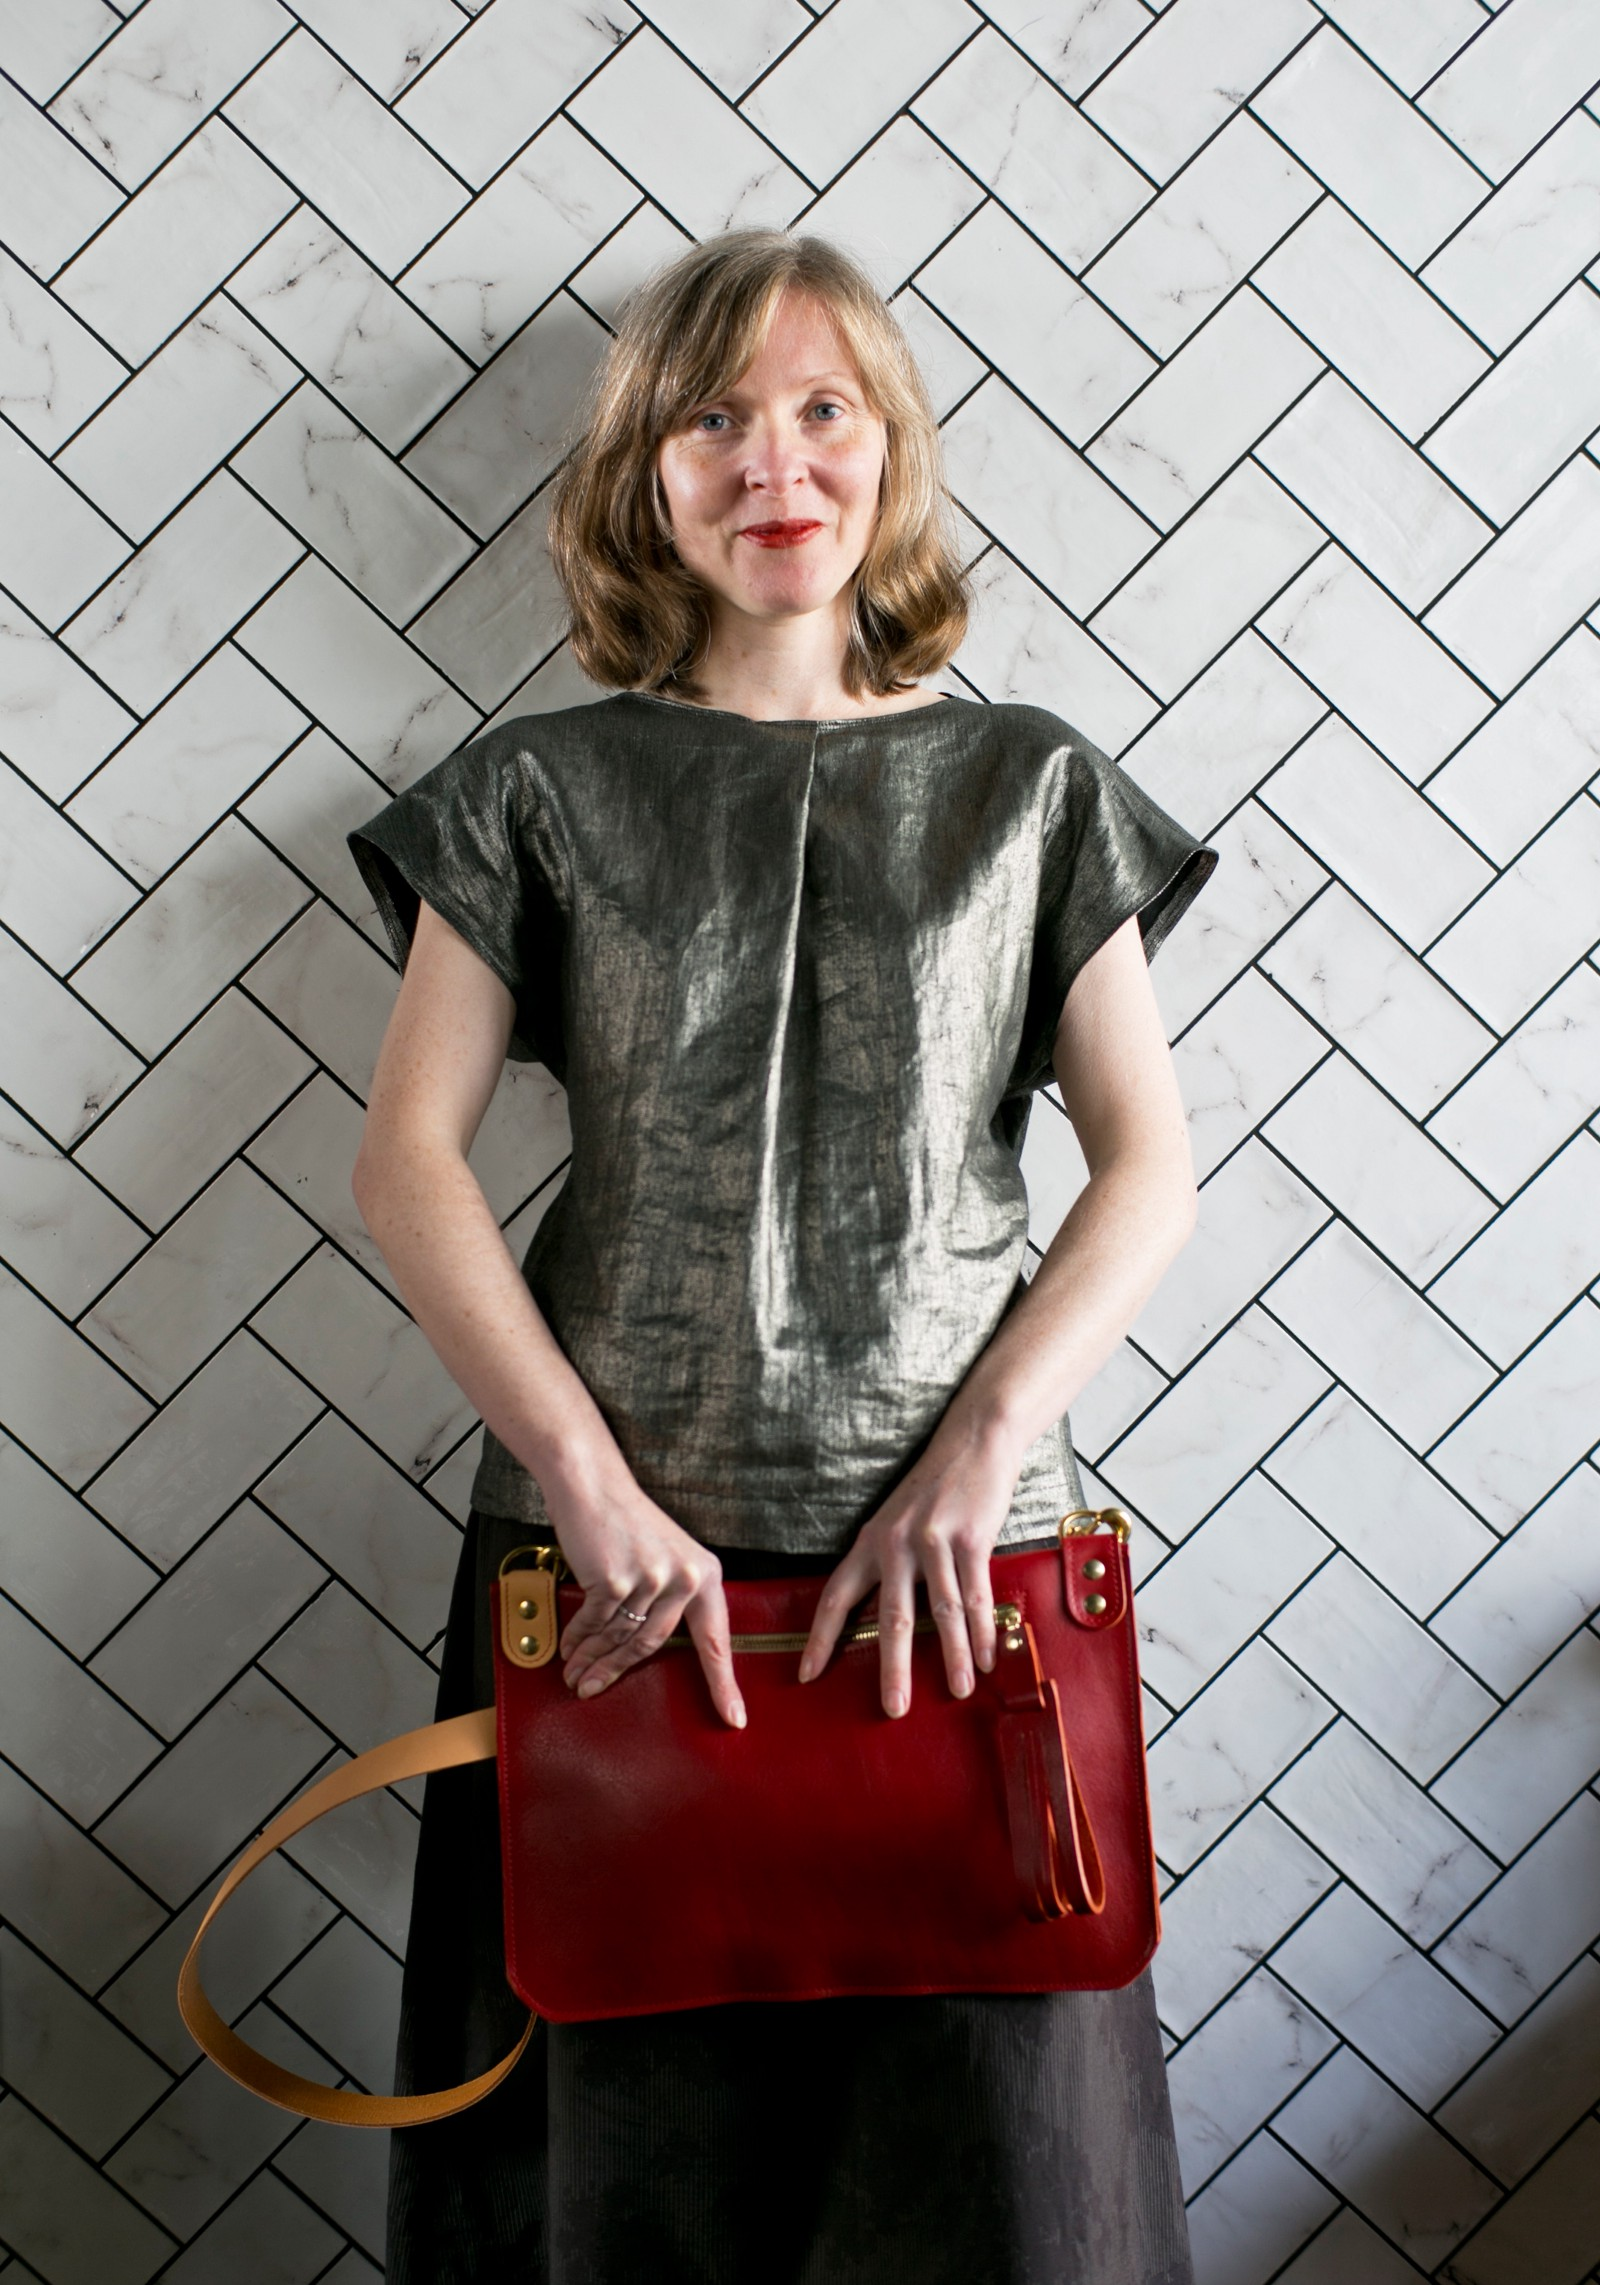 Customise Your Own Handbag Uk Leather Maker St Leonards Launches The Van Der Rohe In Scarlet